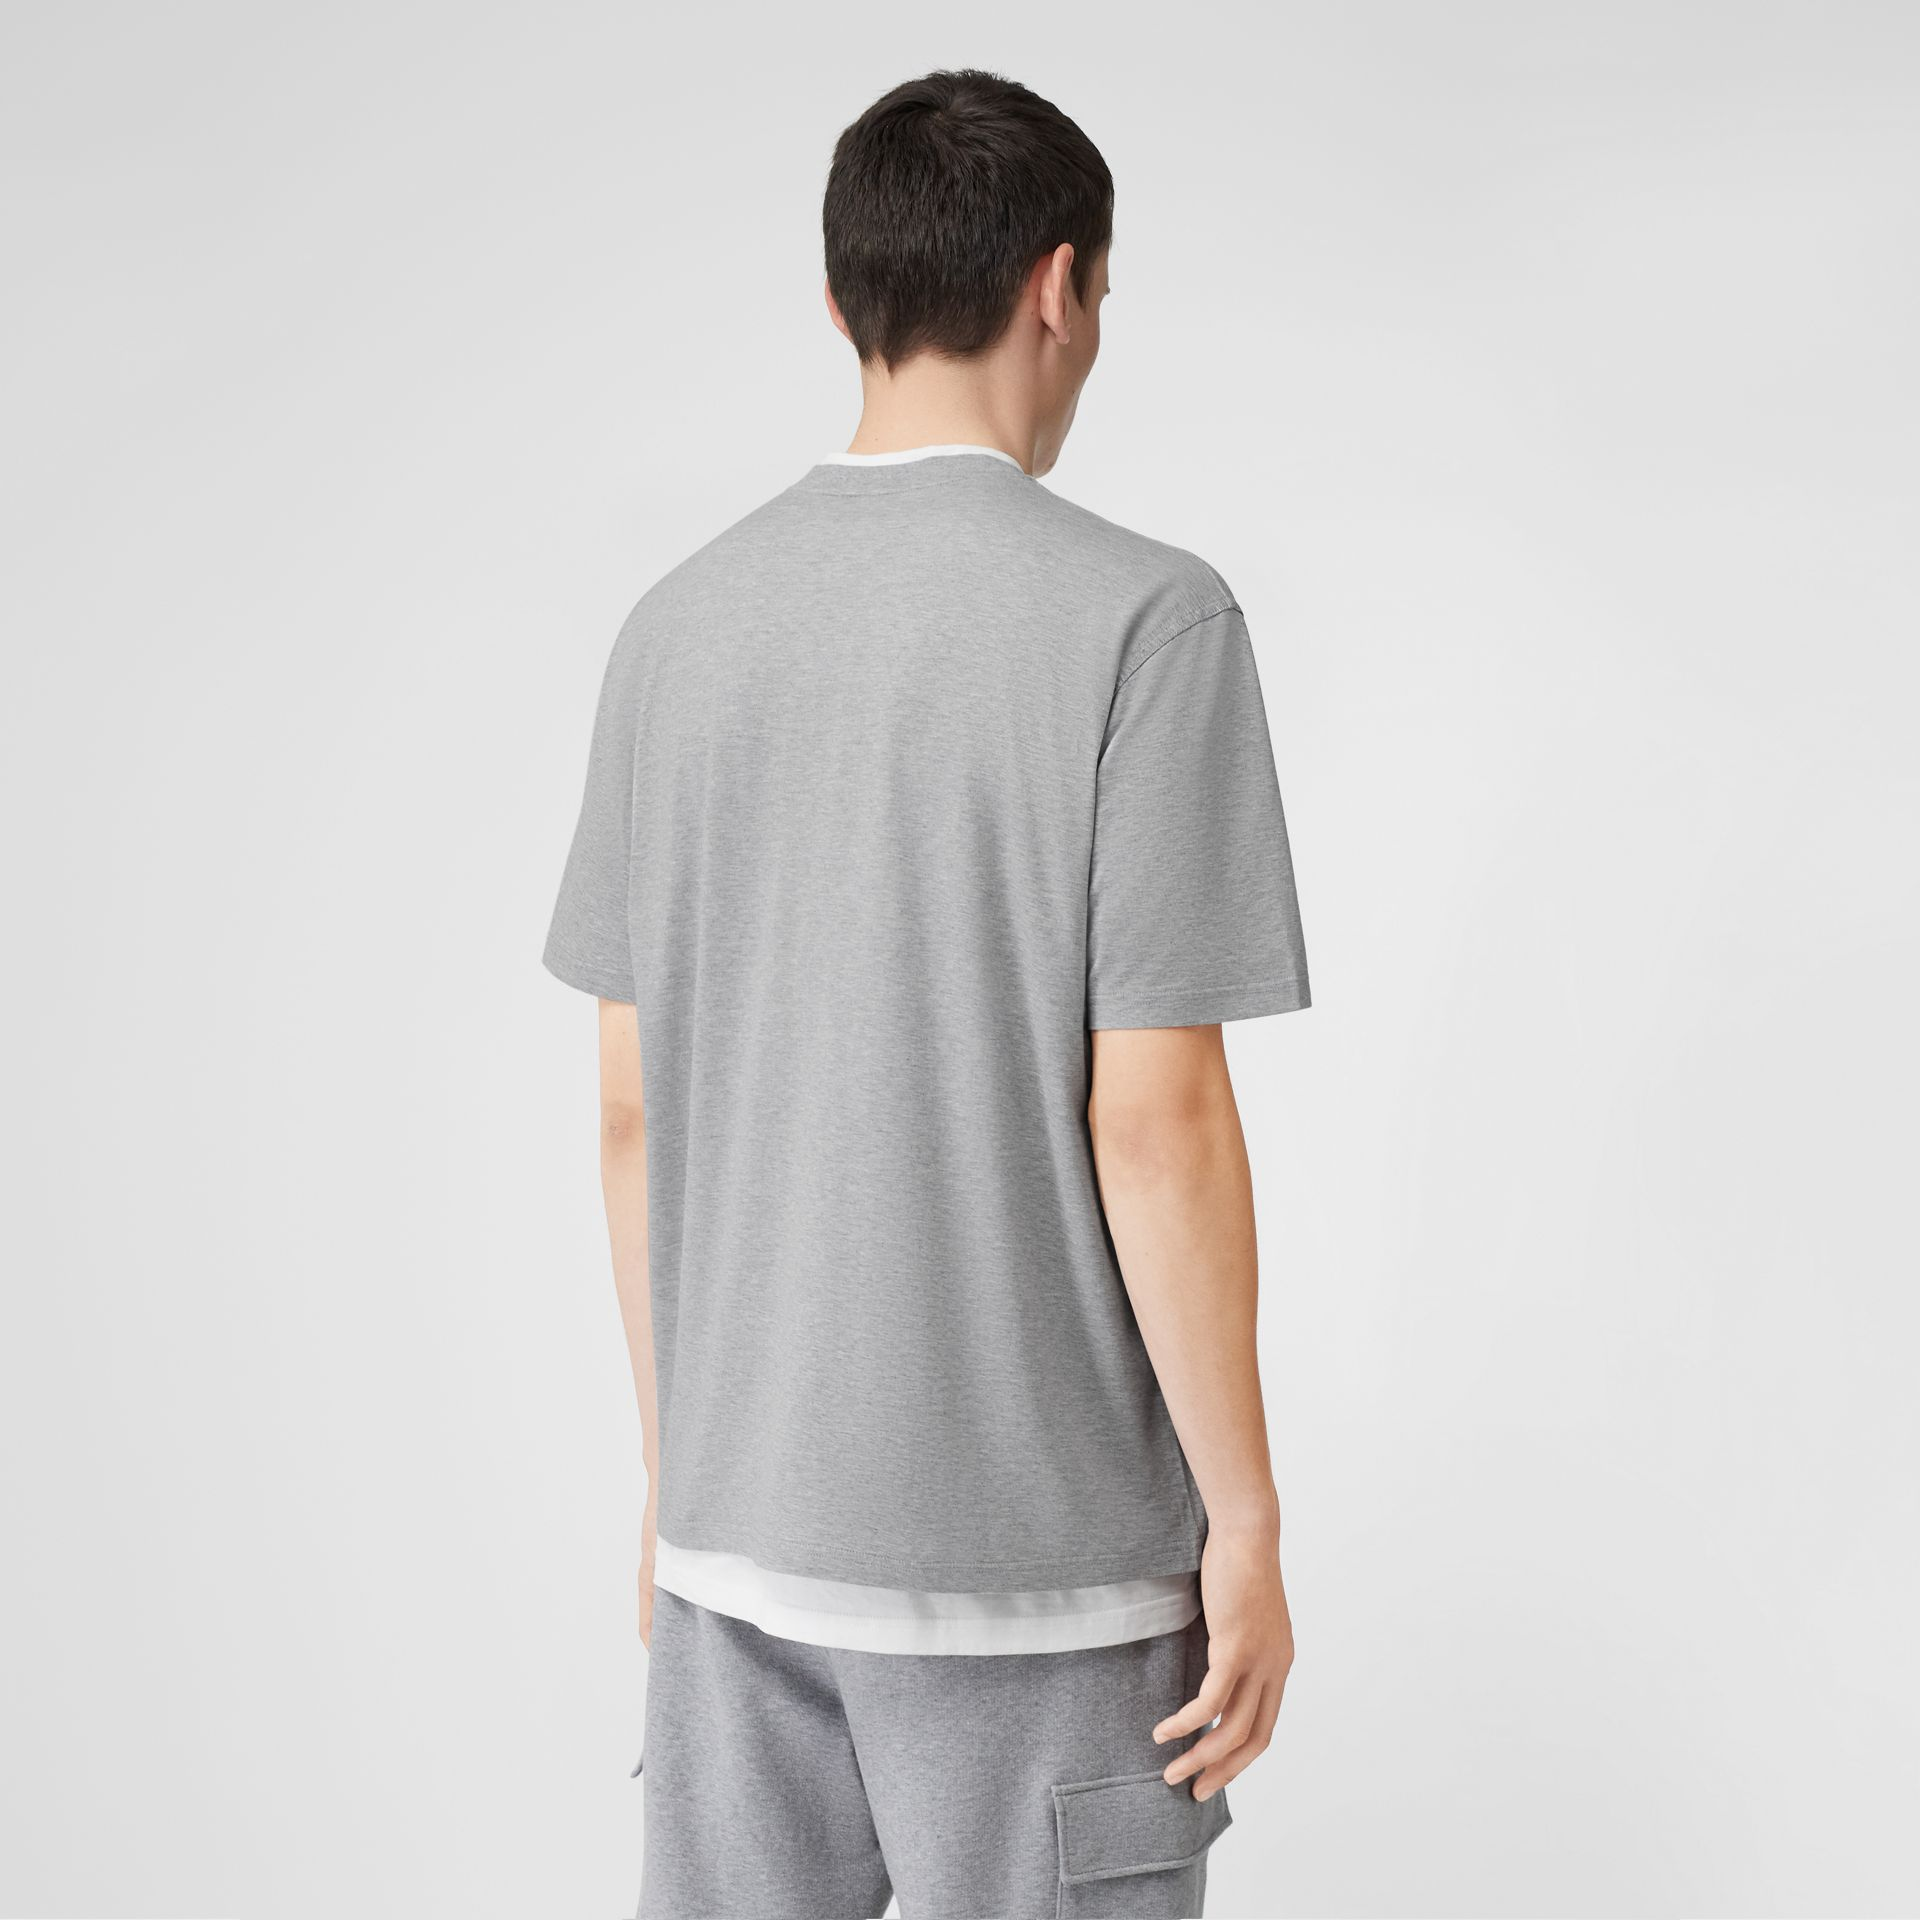 Monogram Motif Cotton Oversized T-shirt in Pale Grey Melange - Men | Burberry United Kingdom - gallery image 2